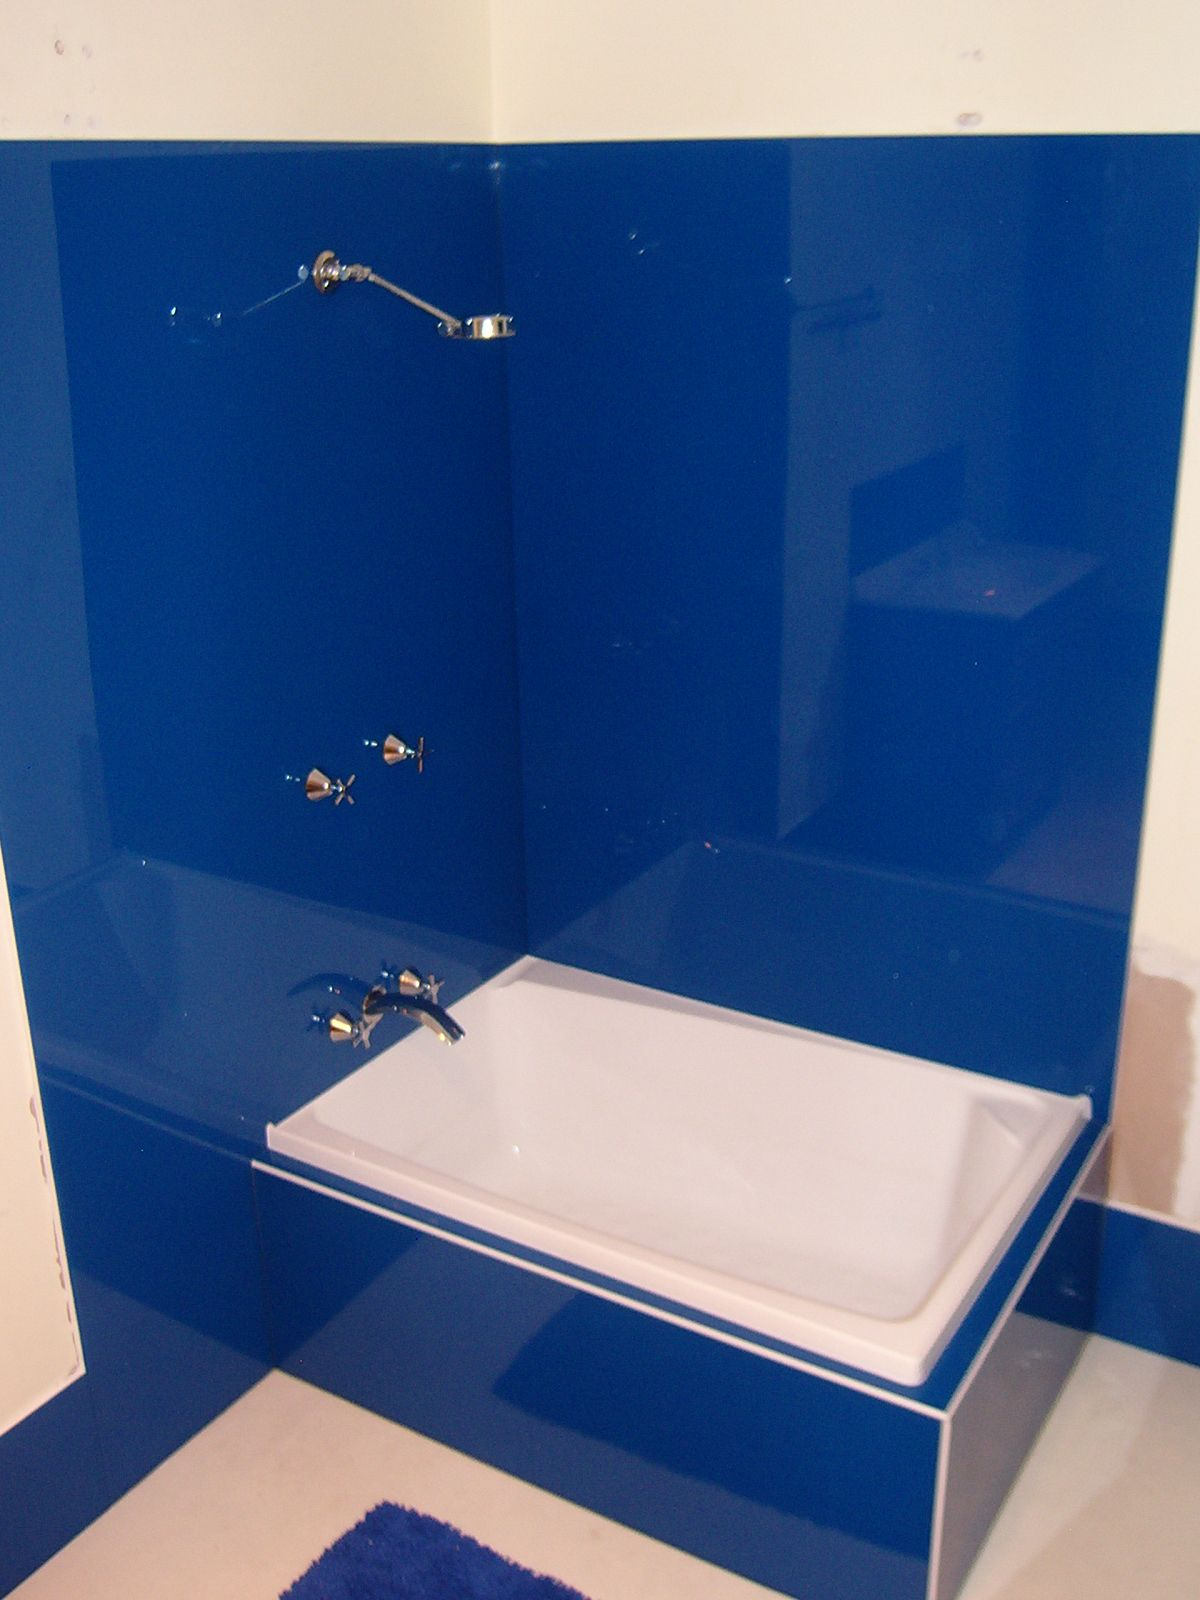 Acrylic Shower Wall and Bathtub in Mondrian Blue.Installed by ...